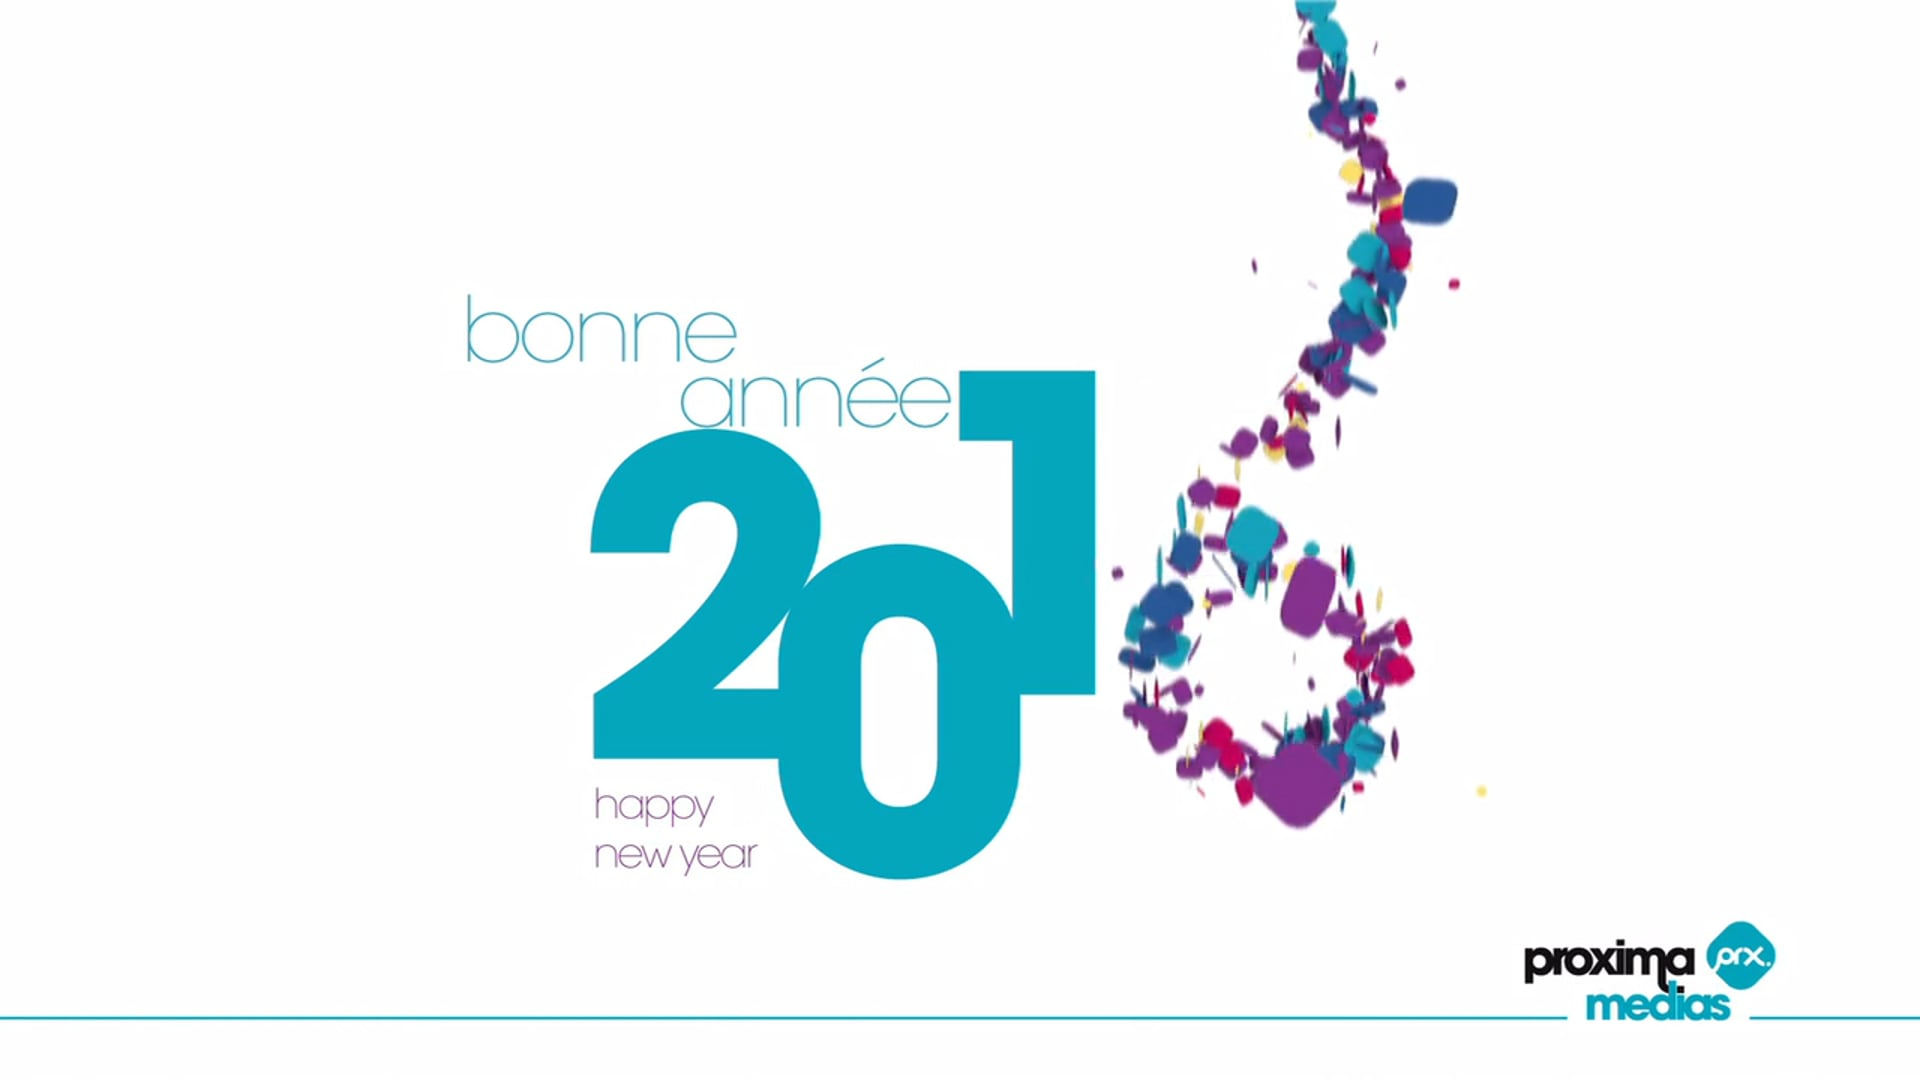 Meilleurs Voeux 2016 ! - Happy New Year 2016!